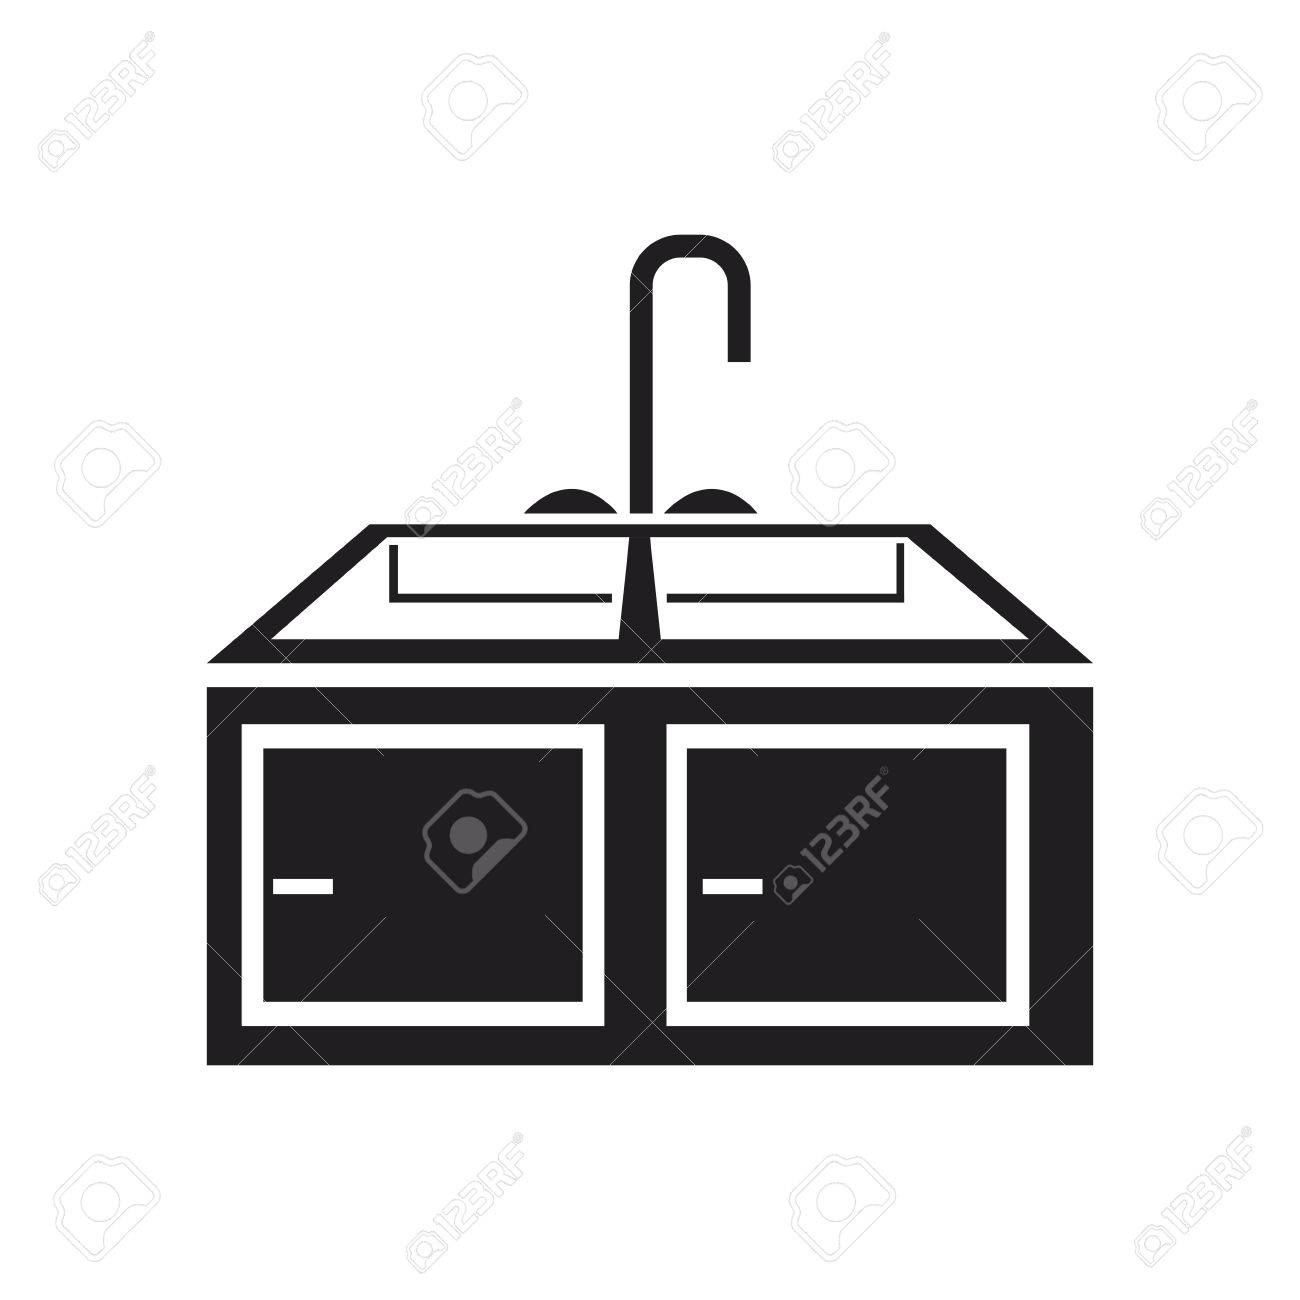 Kitchen Sink With Drying Rack Furniture Vector Illustration ...